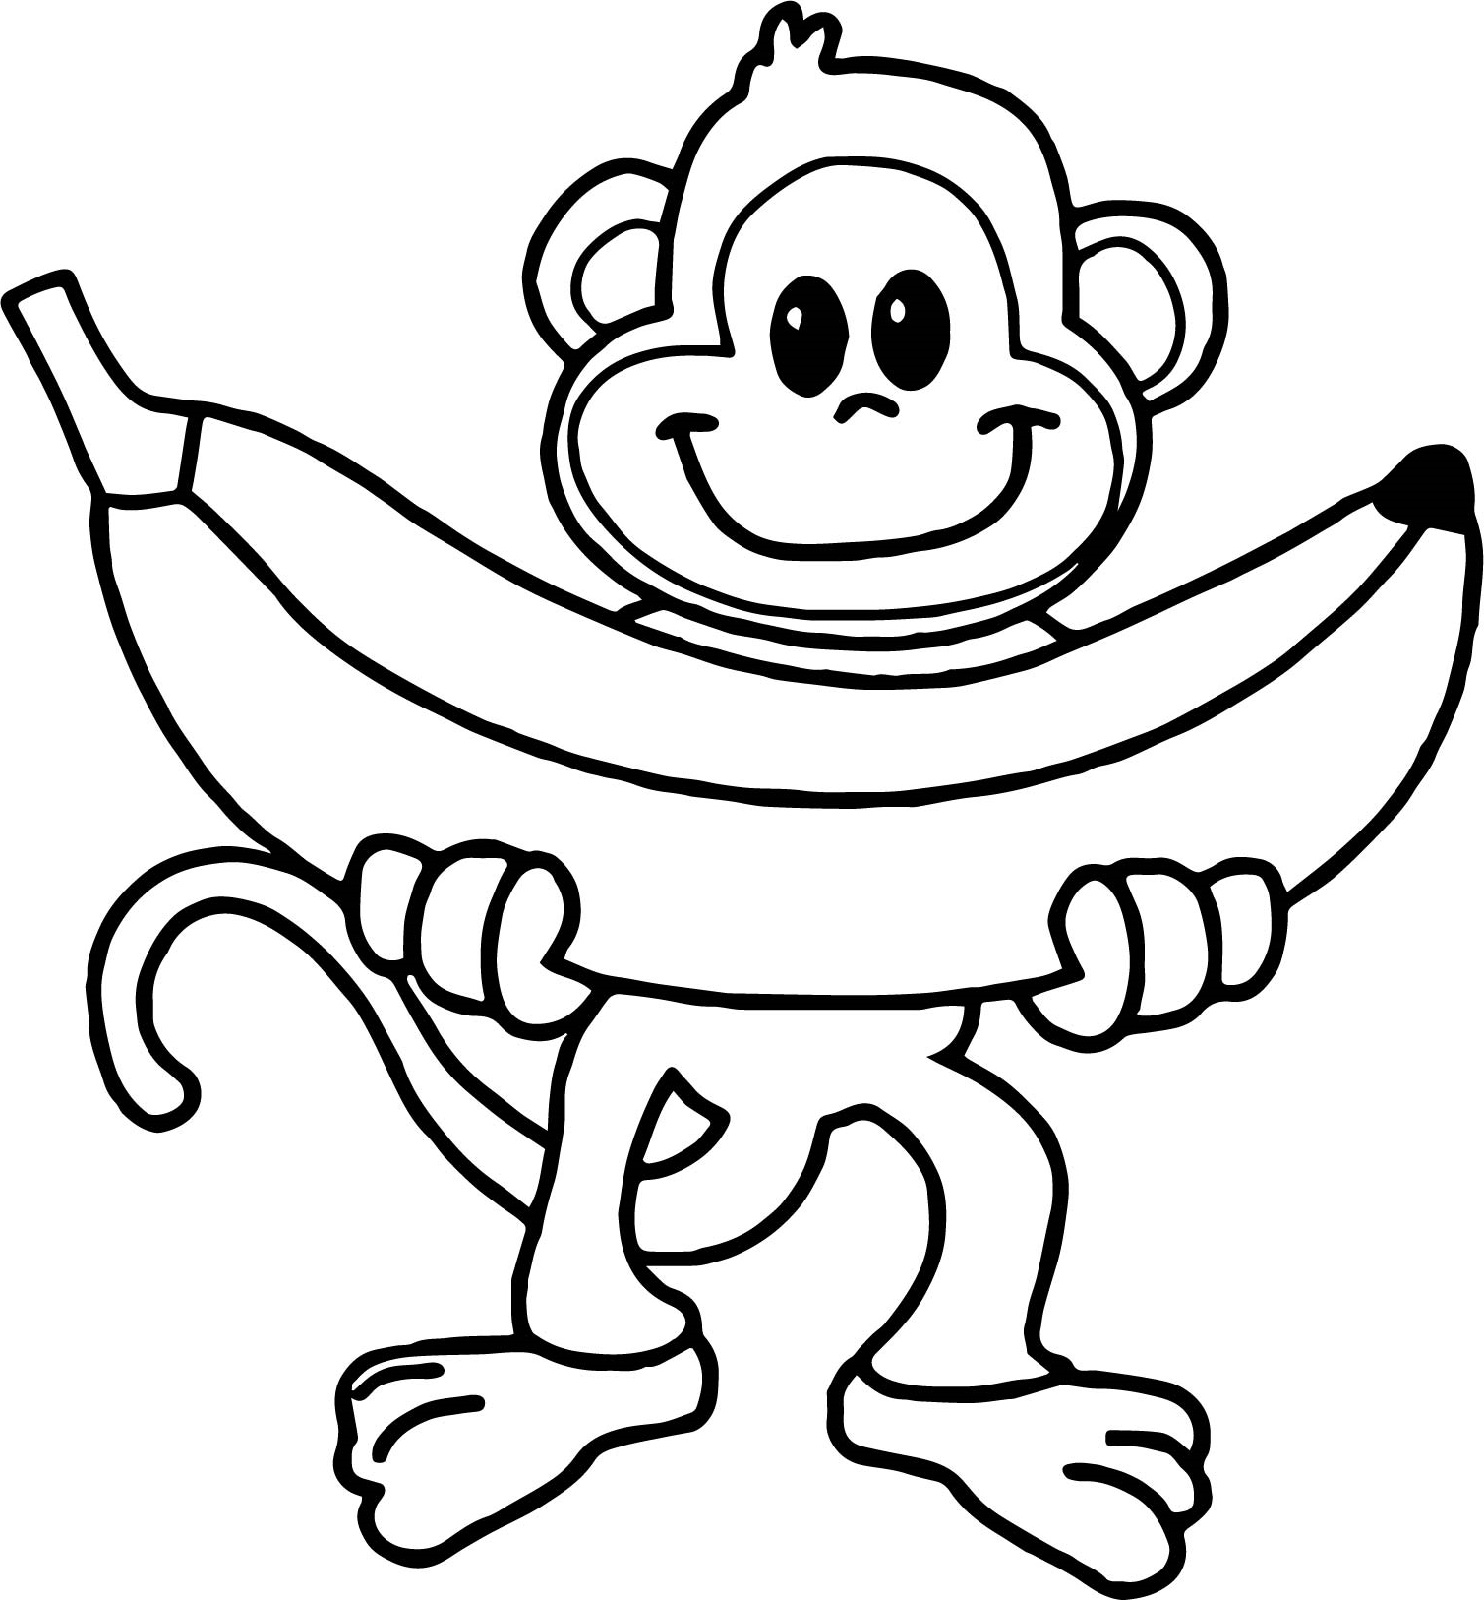 Little Monkey Coloring Pages | 101 Coloring